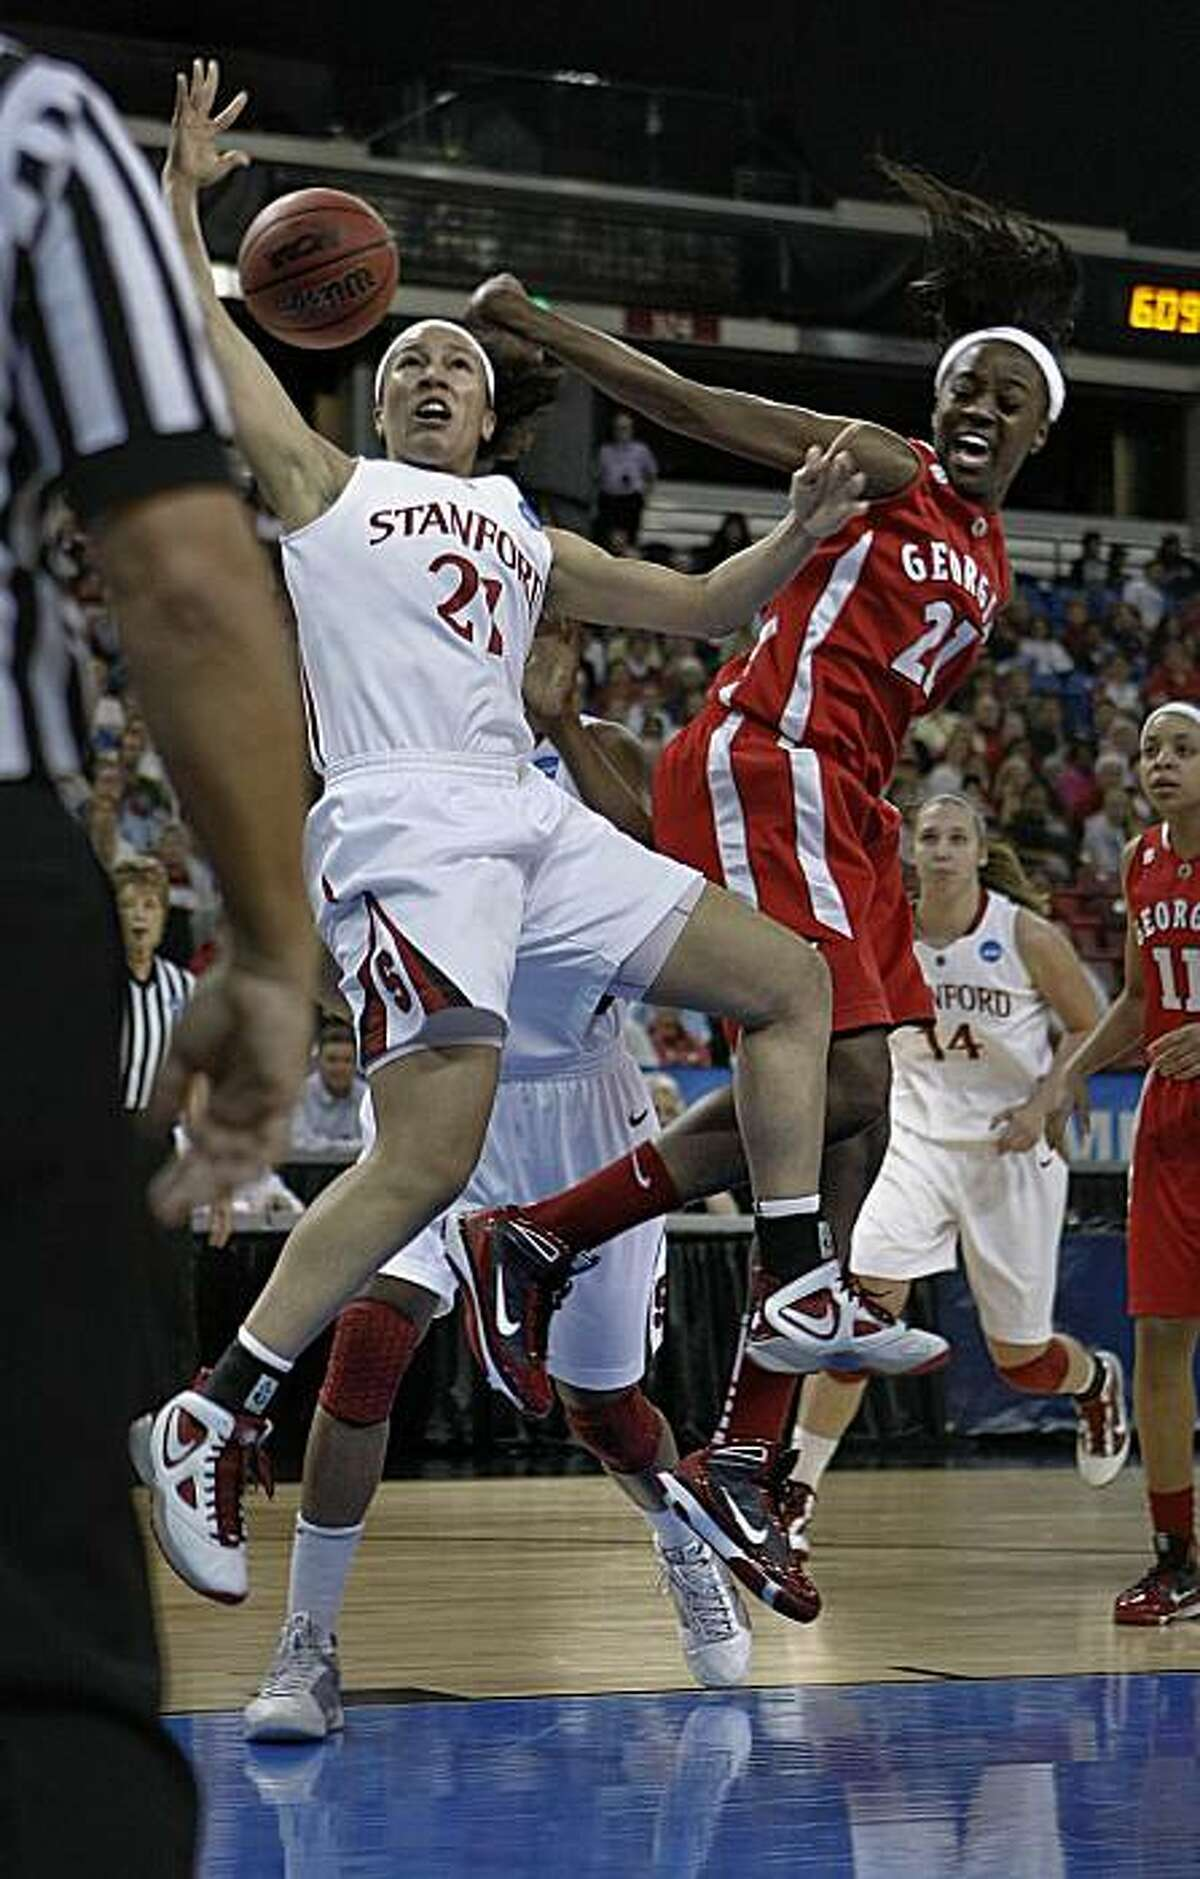 Rosalyn Gold-Onwude battles Porsha Phillips in the first half, as Stanford takes on Georgia in the regional semifinals of the 2010 NCAA Women's Basketball Tournament at Arco Arena in Sacramento on Saturday.